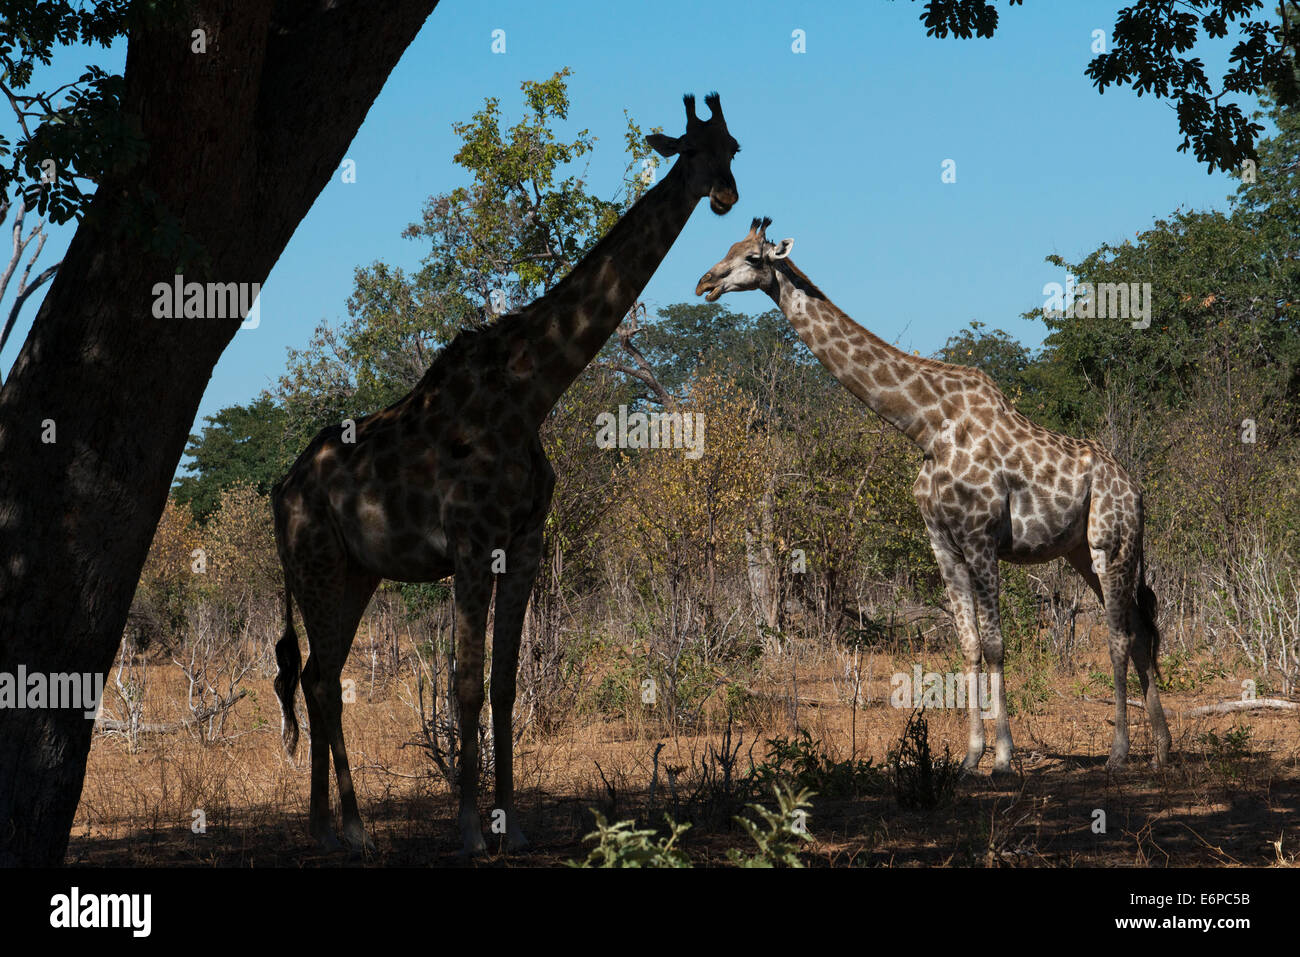 From Victoria Falls is possible to visit the nearby Botswana. Specifically Chobe National Park.  A pair of giraffes - Stock Image